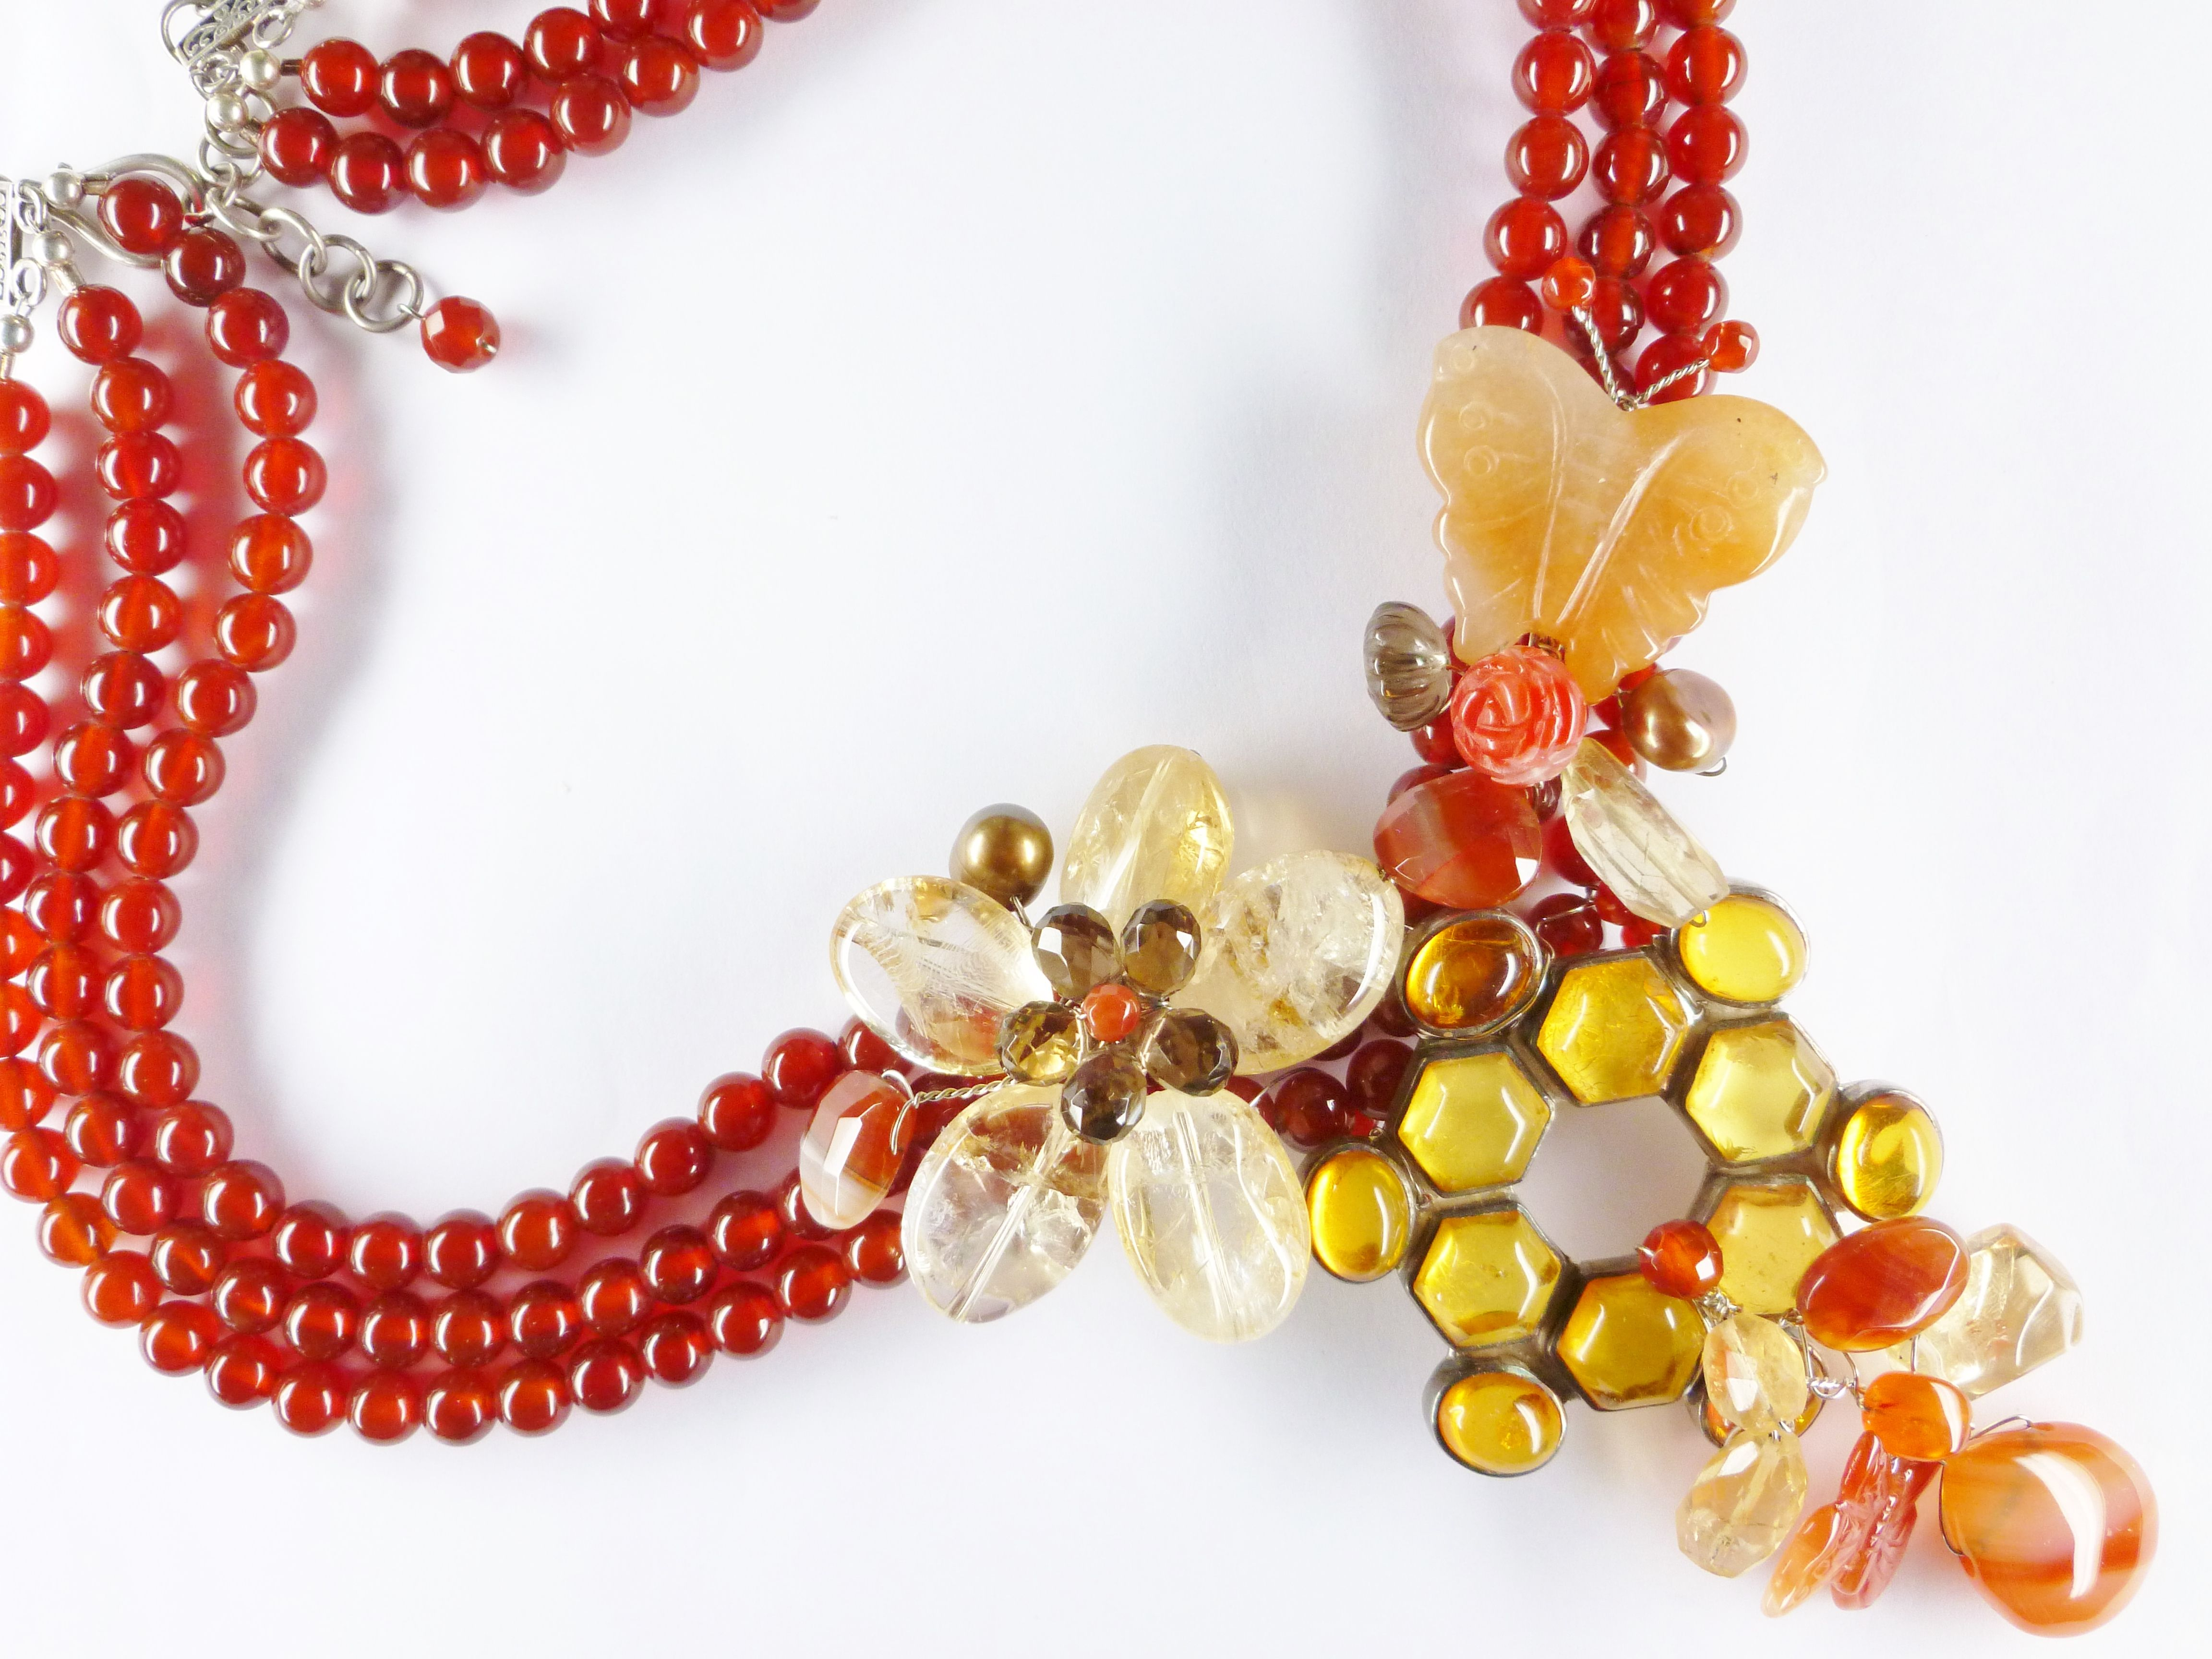 Artisan Handmade Carnelian, Citrine, Quartz & Agate Sterling Silver Necklace from Southeast Asia. Inquiries email: chelseaestatecollection@gmail.com